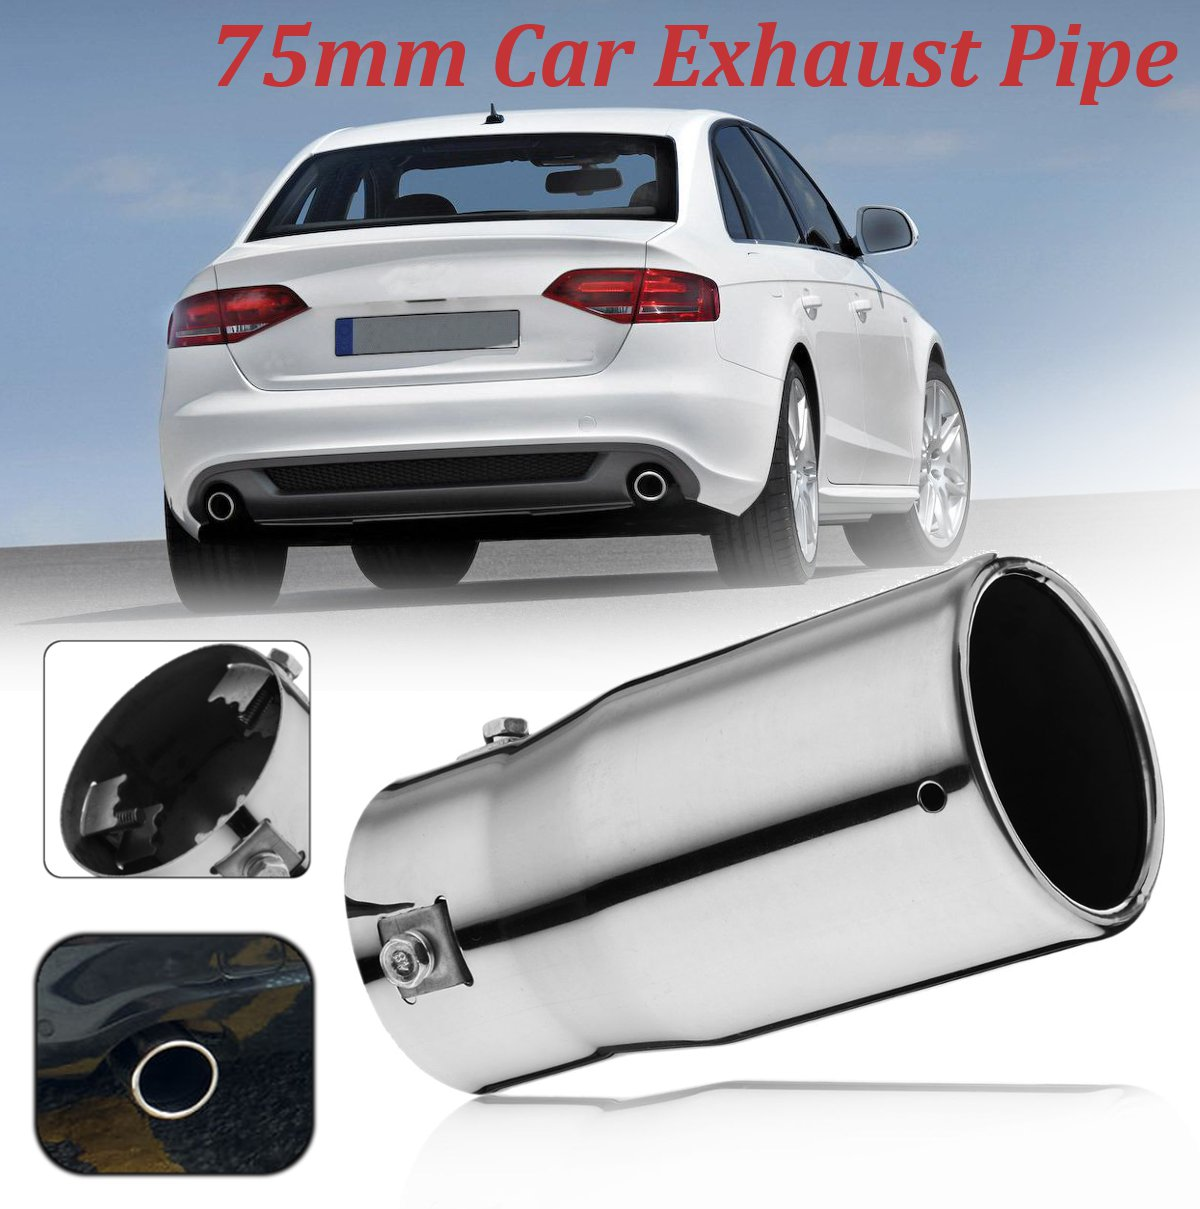 Car Chrome 75mm Outlet Straight Tail Exhaust Pipe Rear Muffler Tip End Trim Oval Universal Car Rear Tail Throat Liner Accessorie|Exhaust Manifolds| |  -